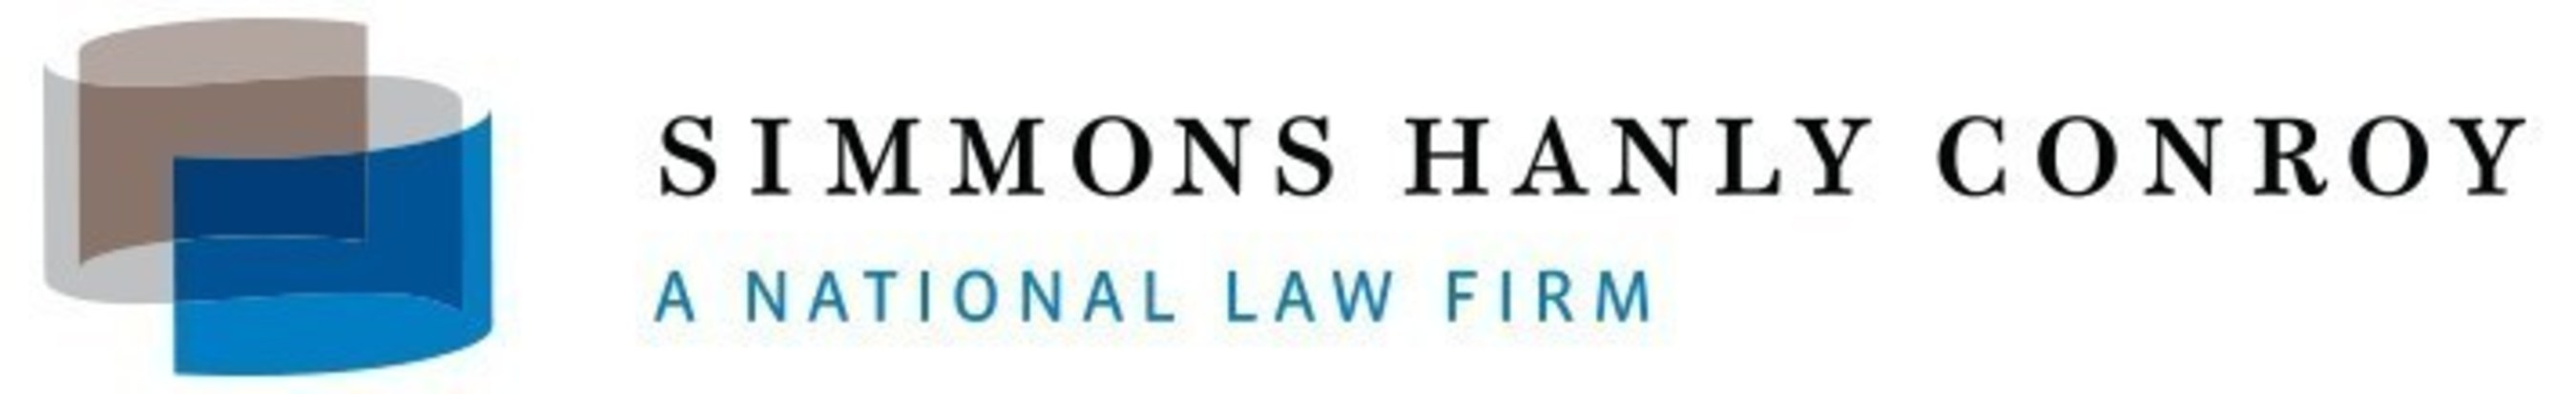 Illinois Super Lawyers Recognize Simmons Hanly Conroy Attorneys